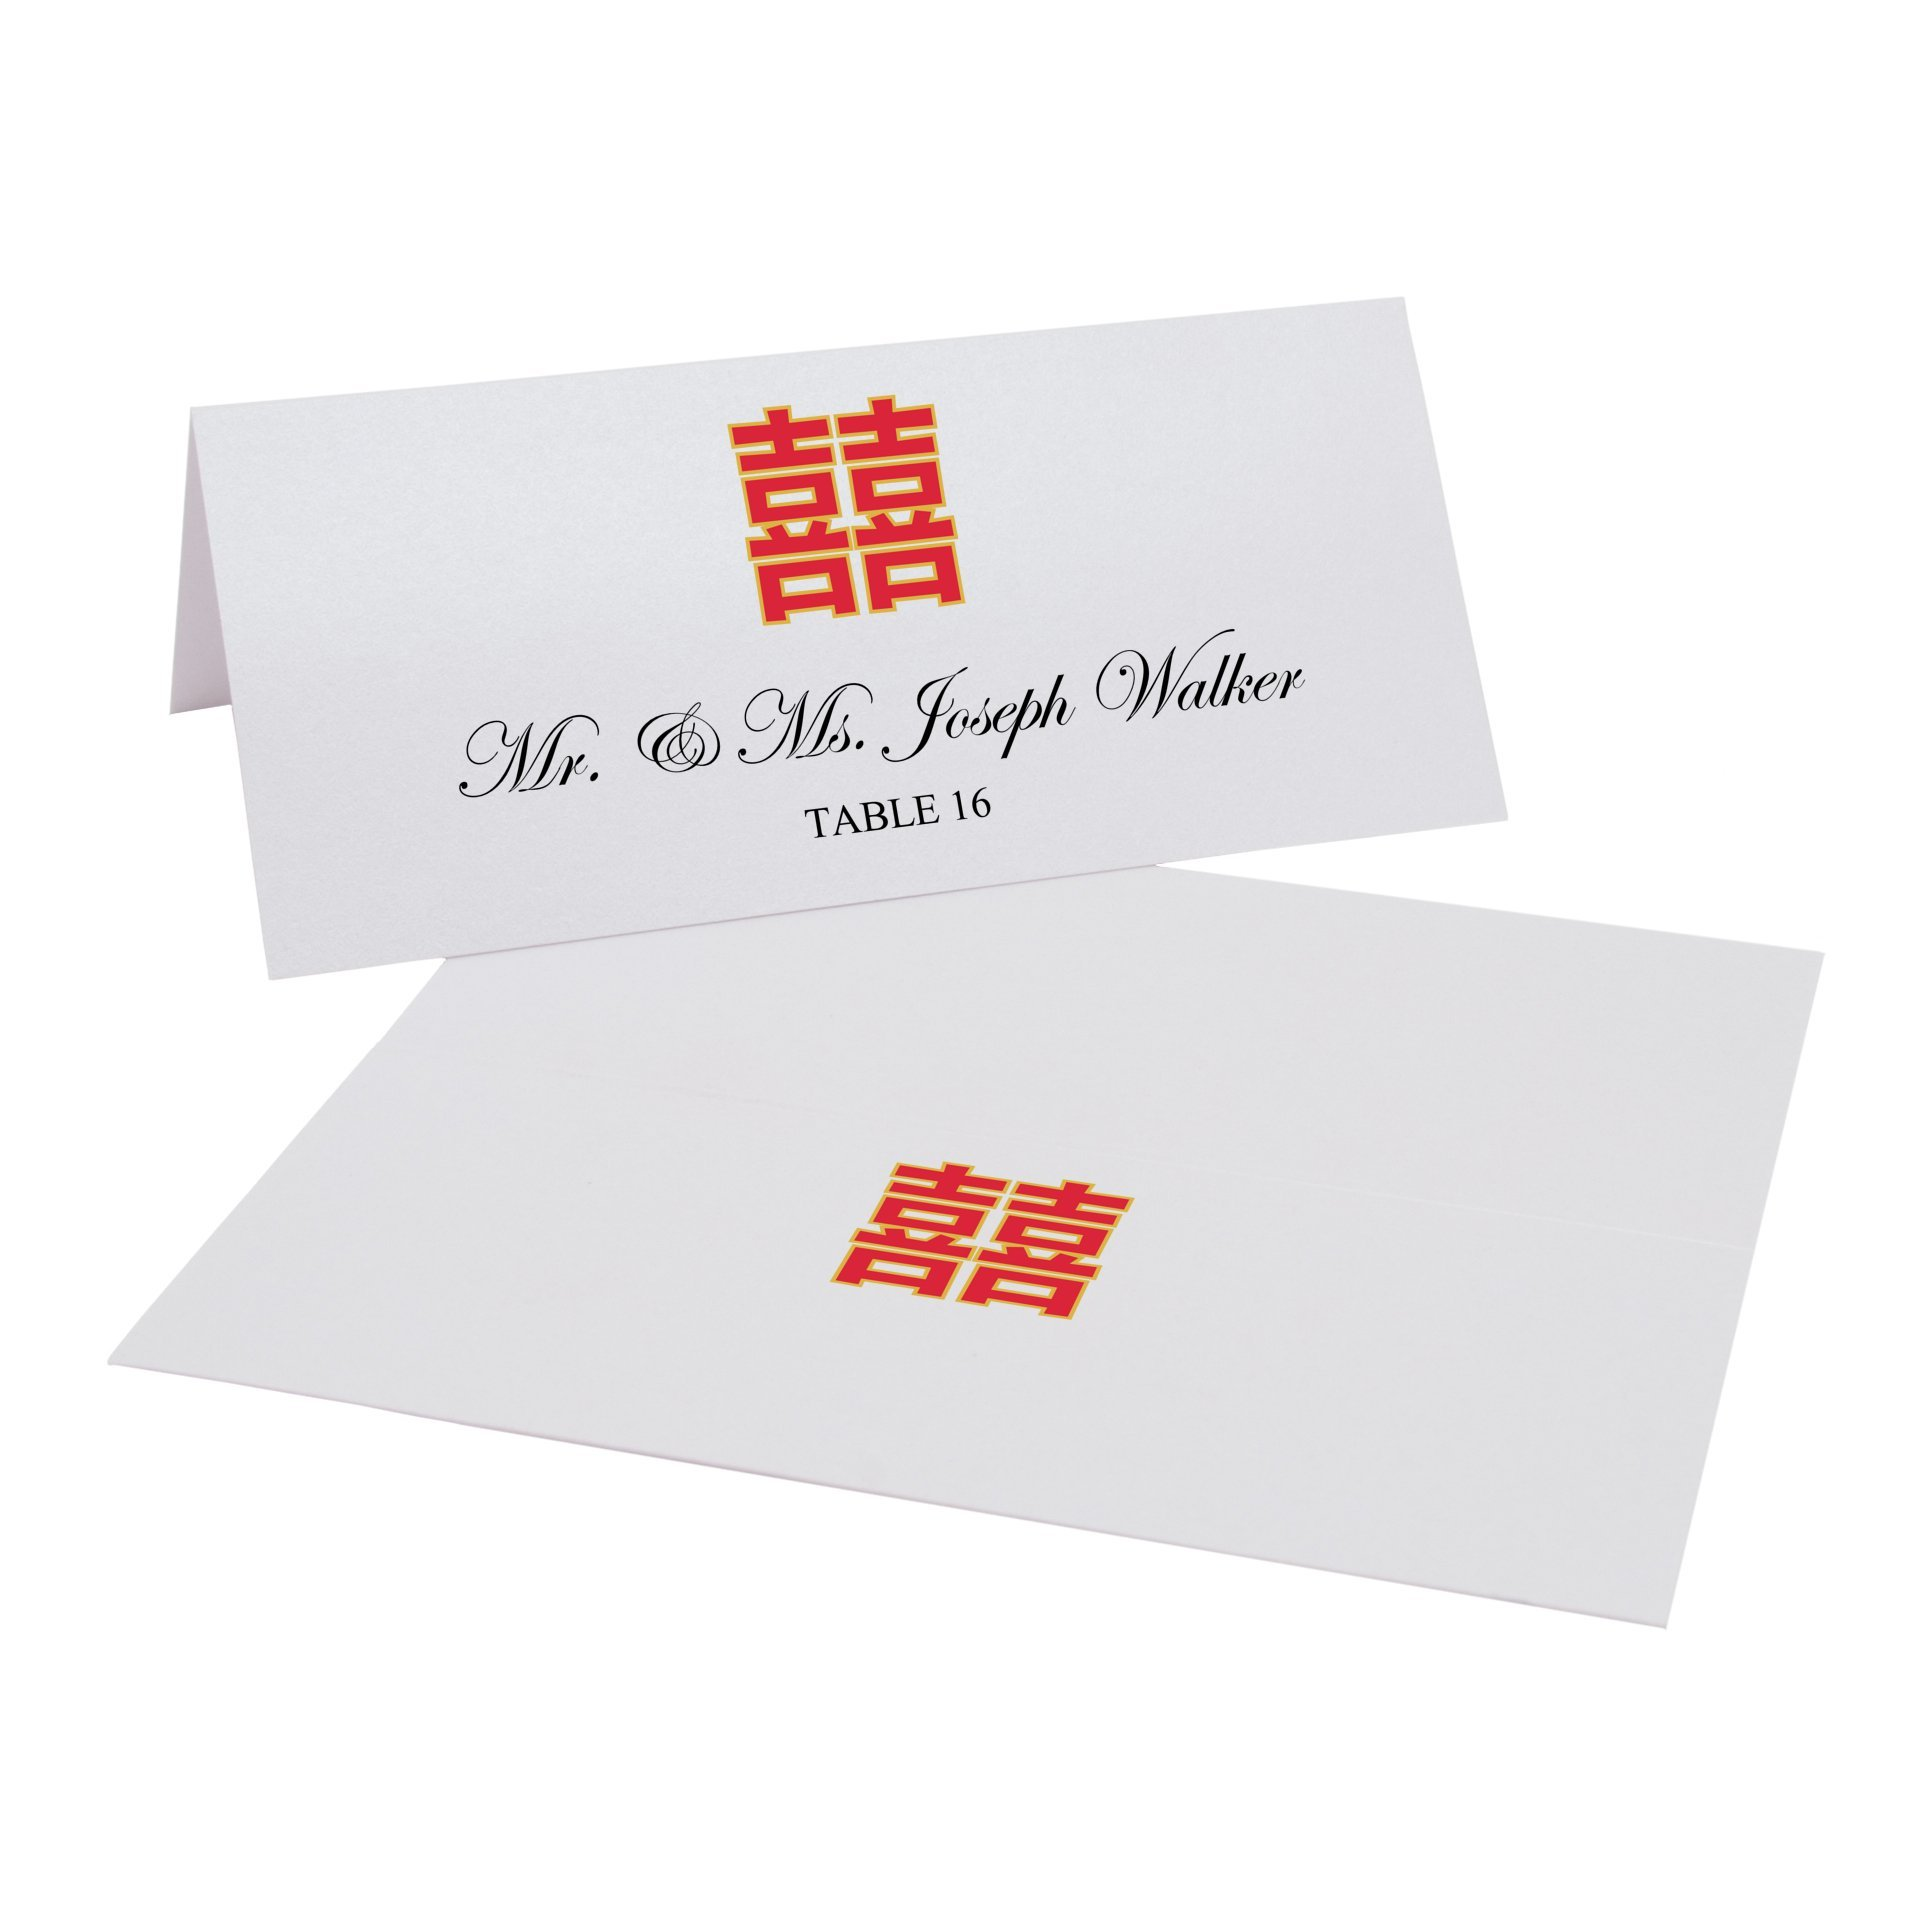 Chinese Double Happiness Easy Print Place Cards, Pearl White, Set of 375 (94 Sheets) by Documents and Designs